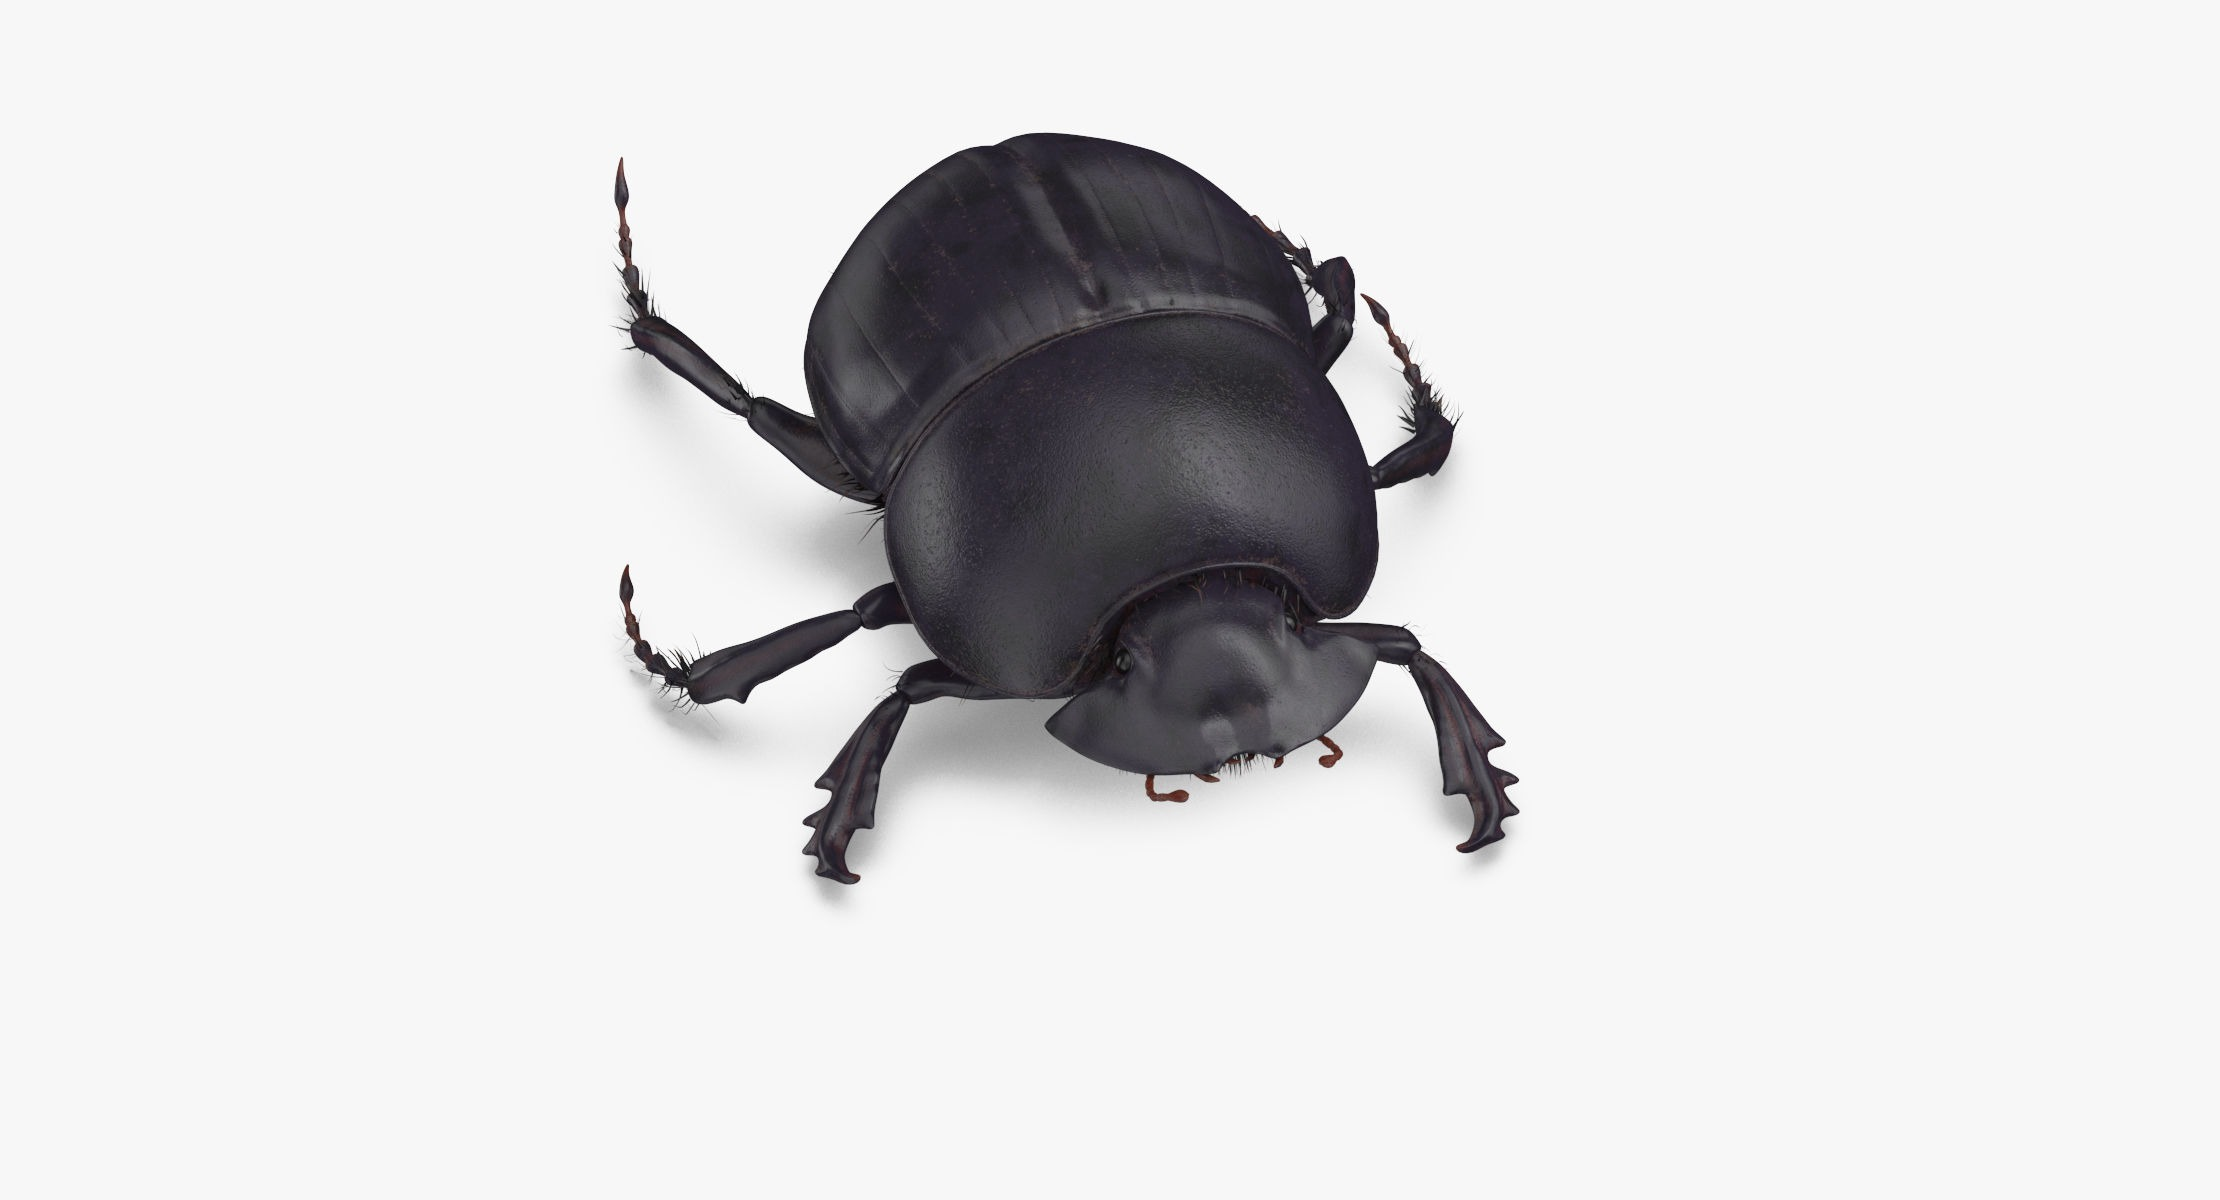 Black Scarab Beetle Walking 01 - reel 1